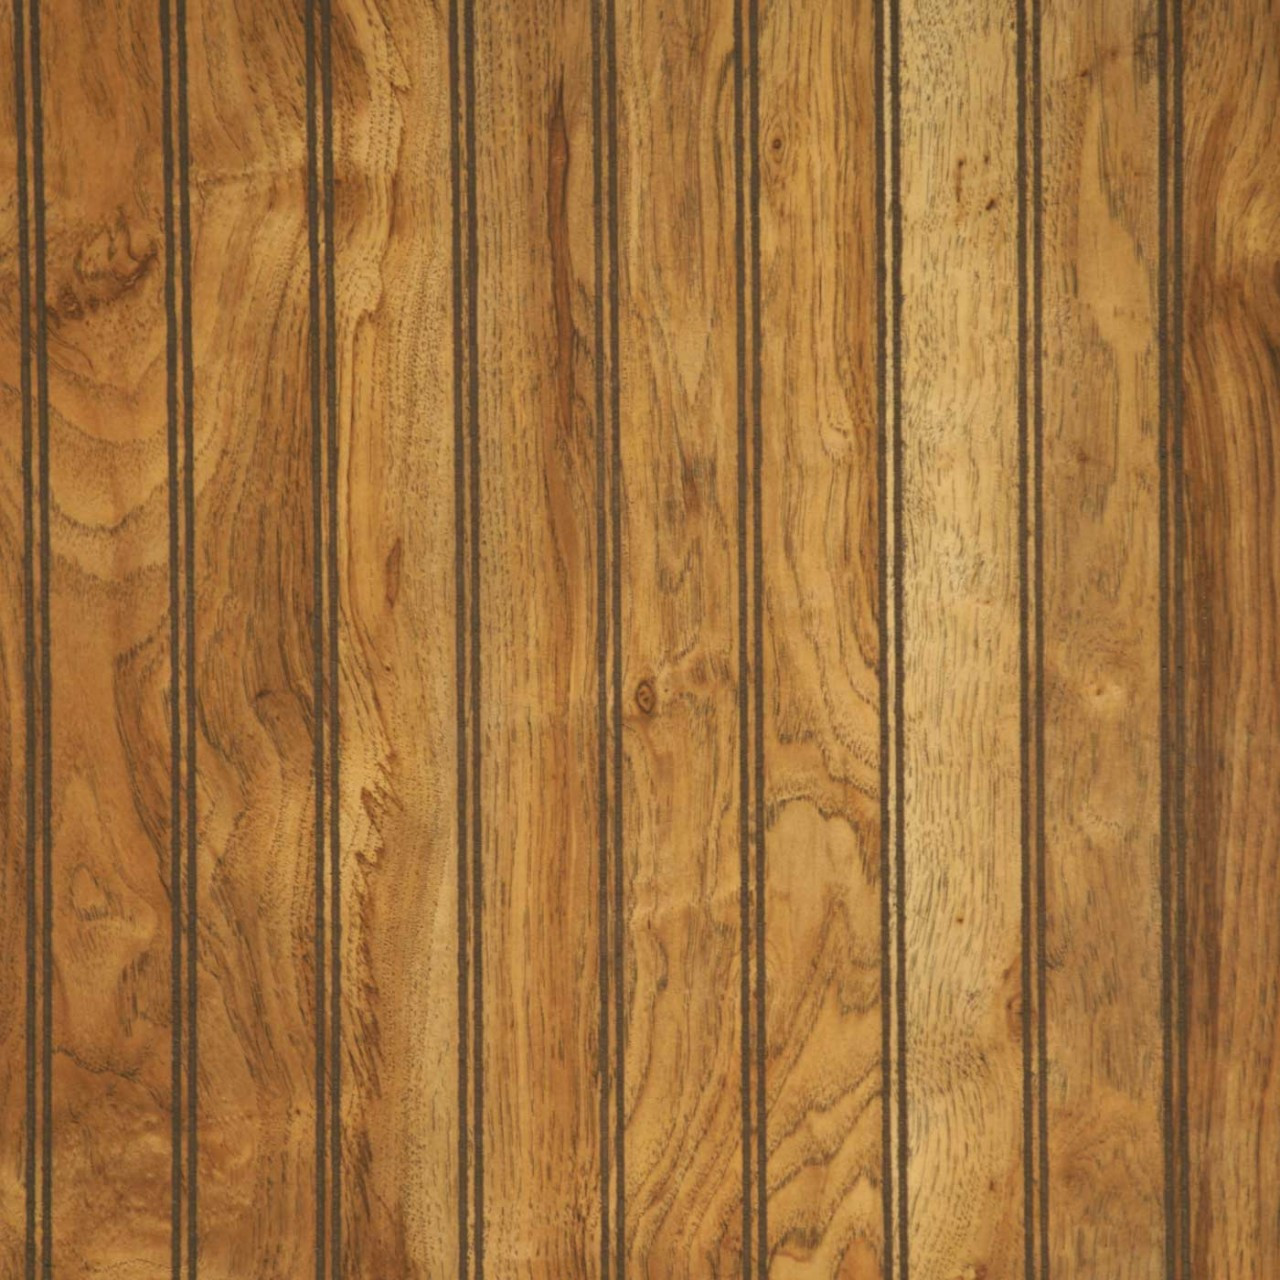 Oak Wall Panelling Wood Wall Paneling Casual Cottage